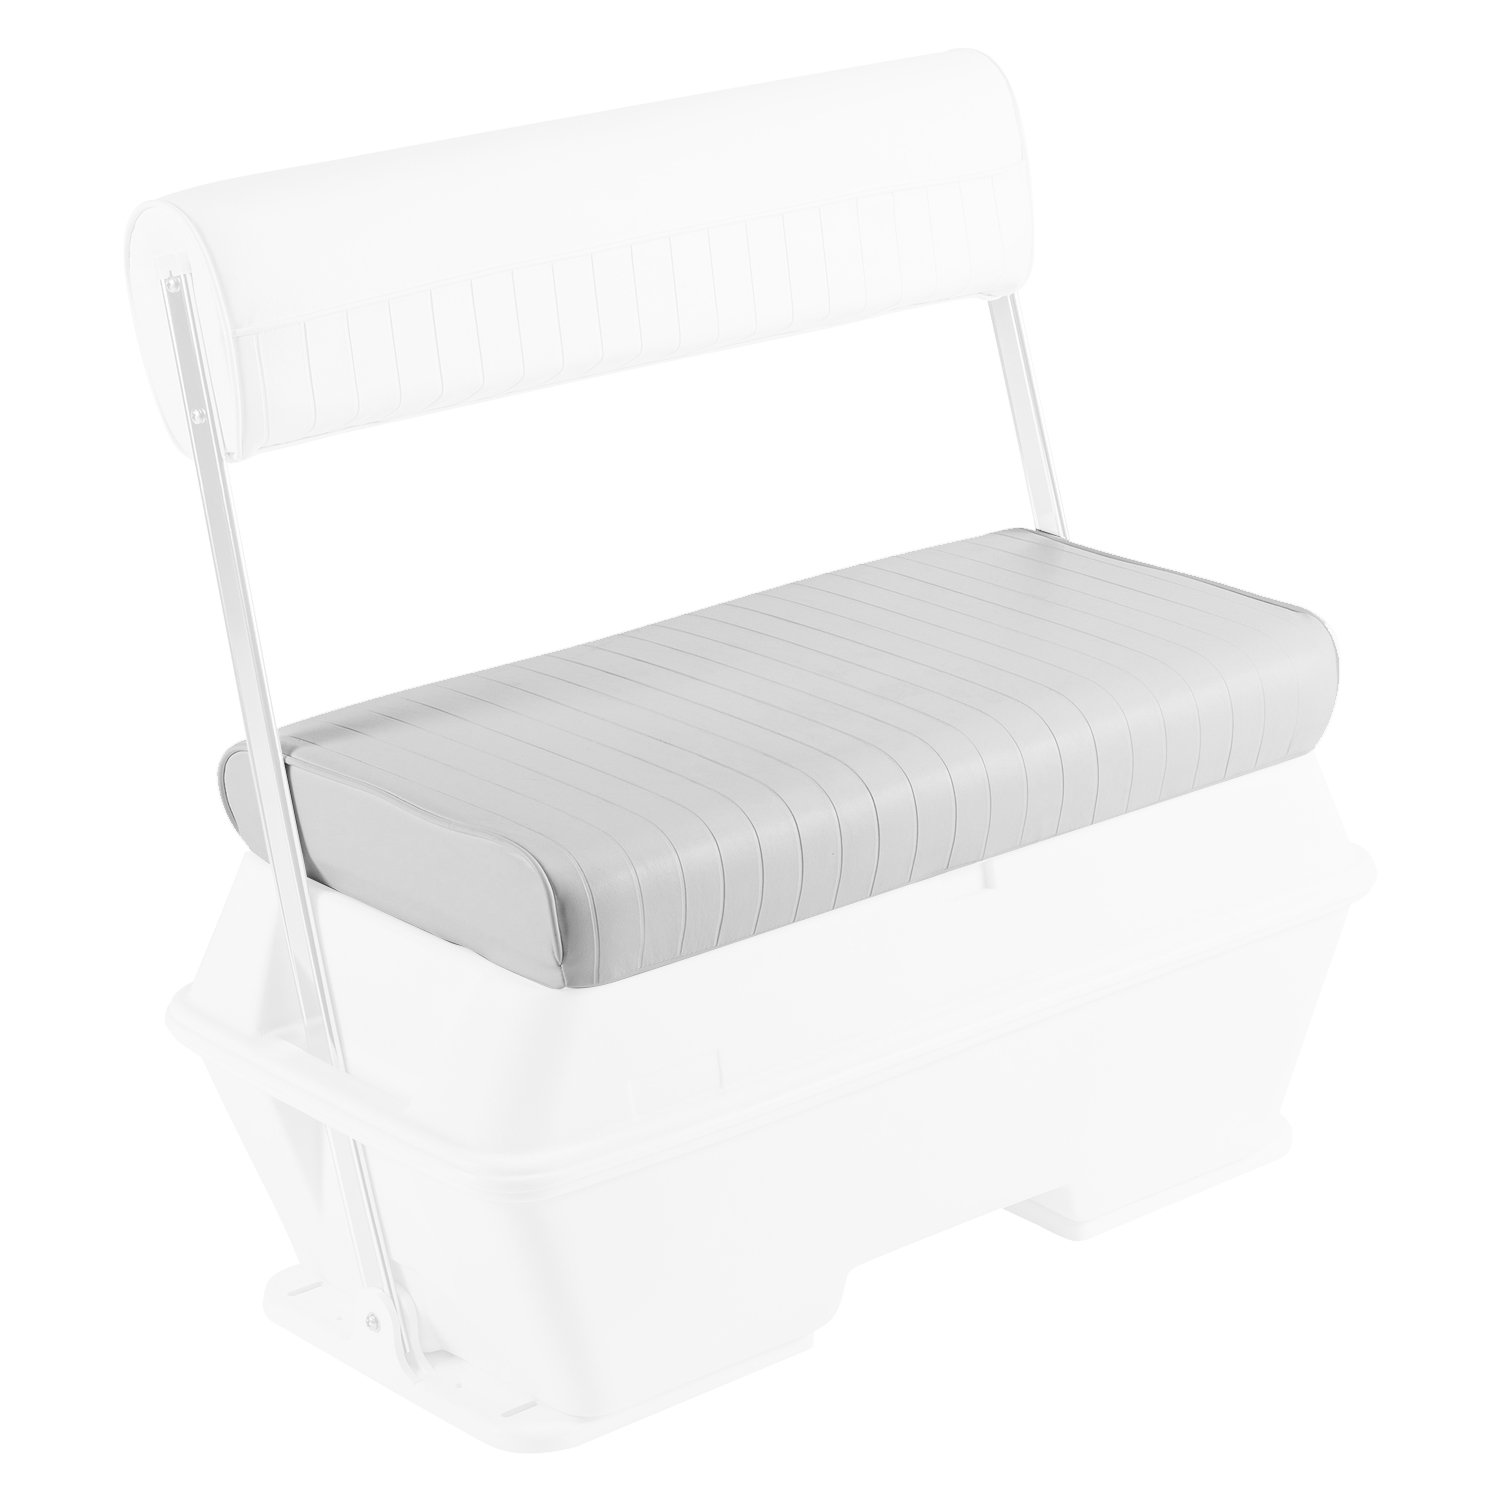 Wise Replacement Seat Cushion for Wise 8WD156-710 Swingback Cooler Seat, White